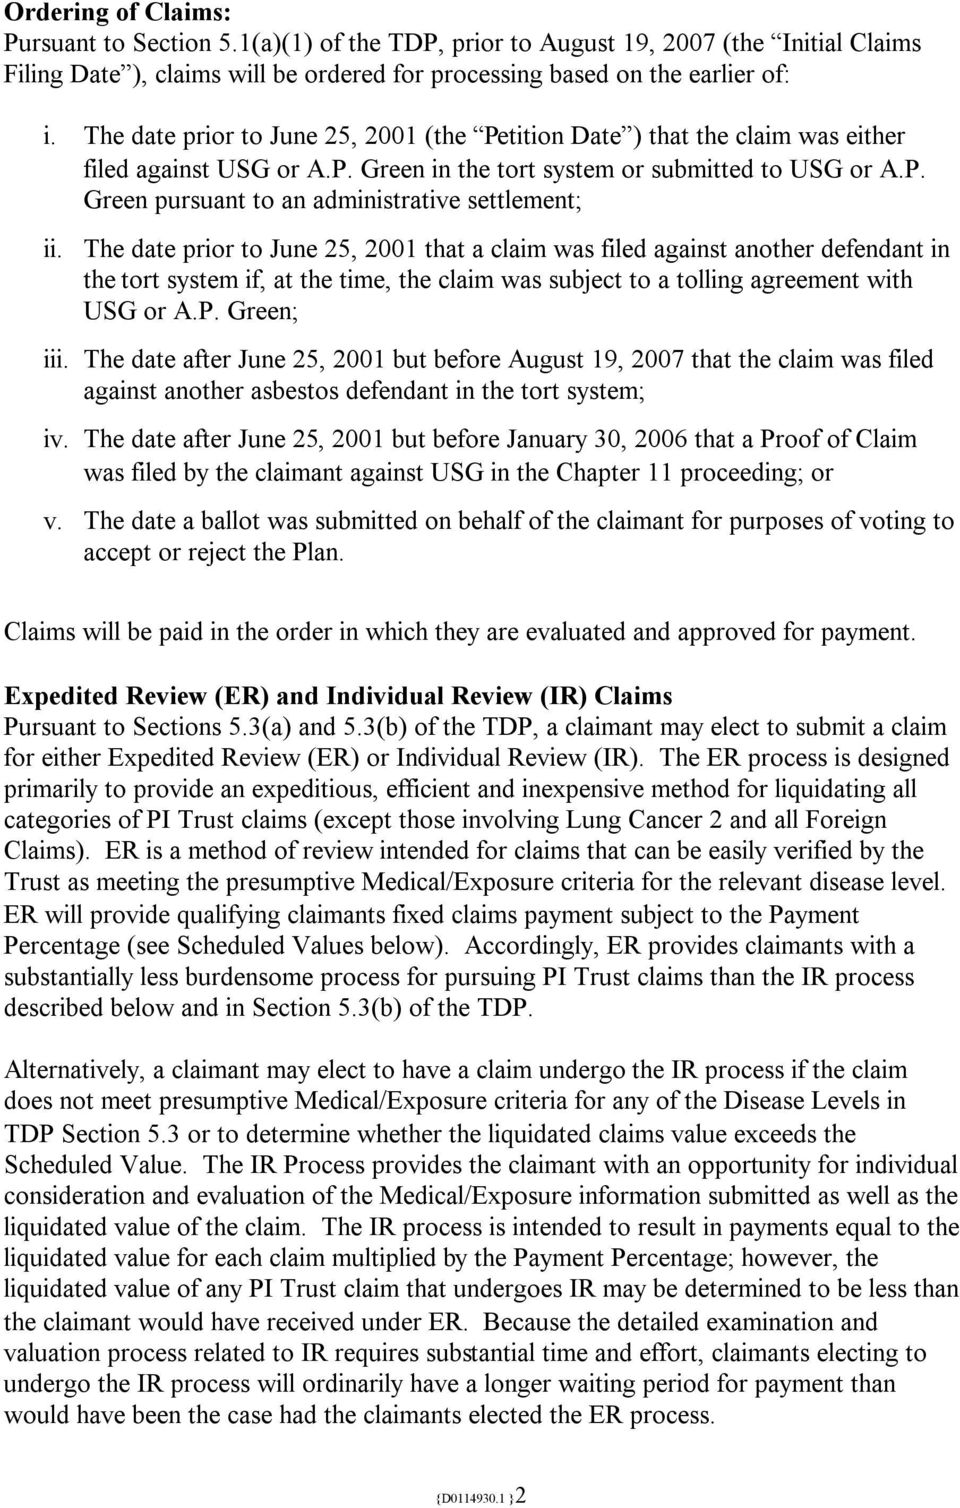 The date prior to June 25, 2001 that a claim was filed against another defendant in the tort system if, at the time, the claim was subject to a tolling agreement with USG or A.P. Green; iii.